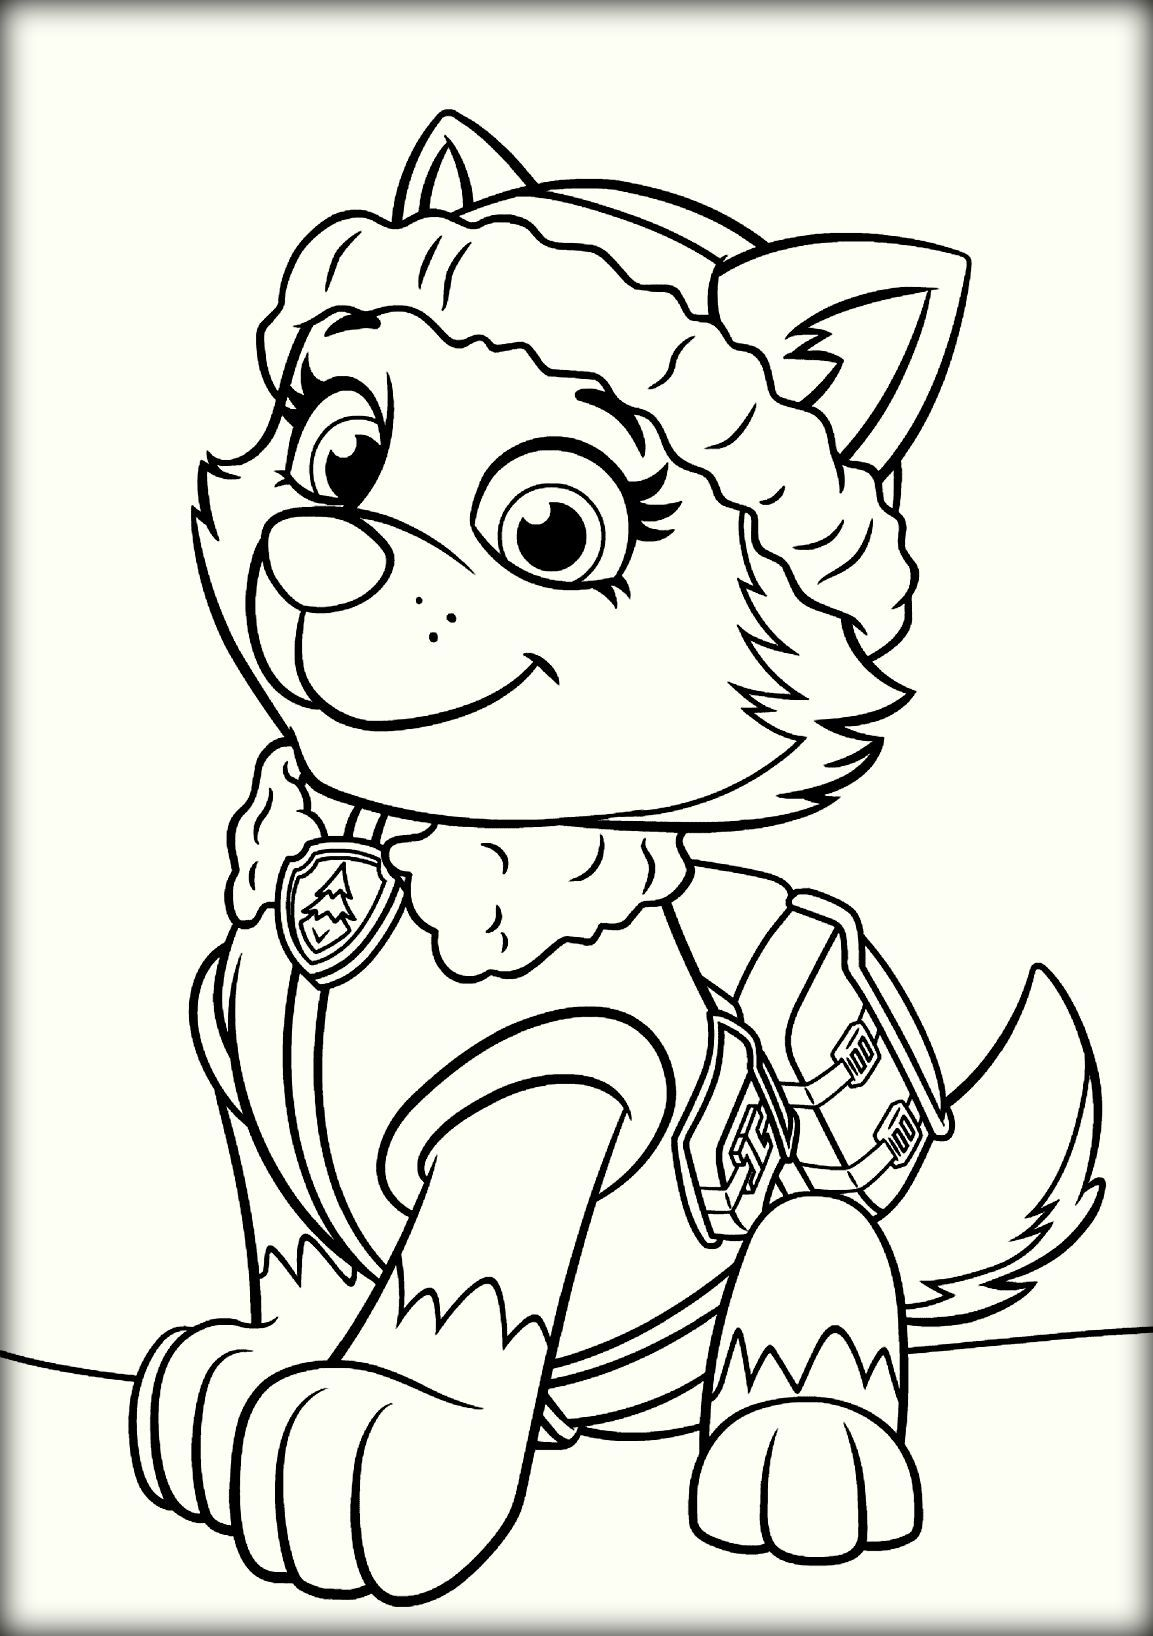 Paw Patrol Everest Coloring Pages Coloring Pages Paw